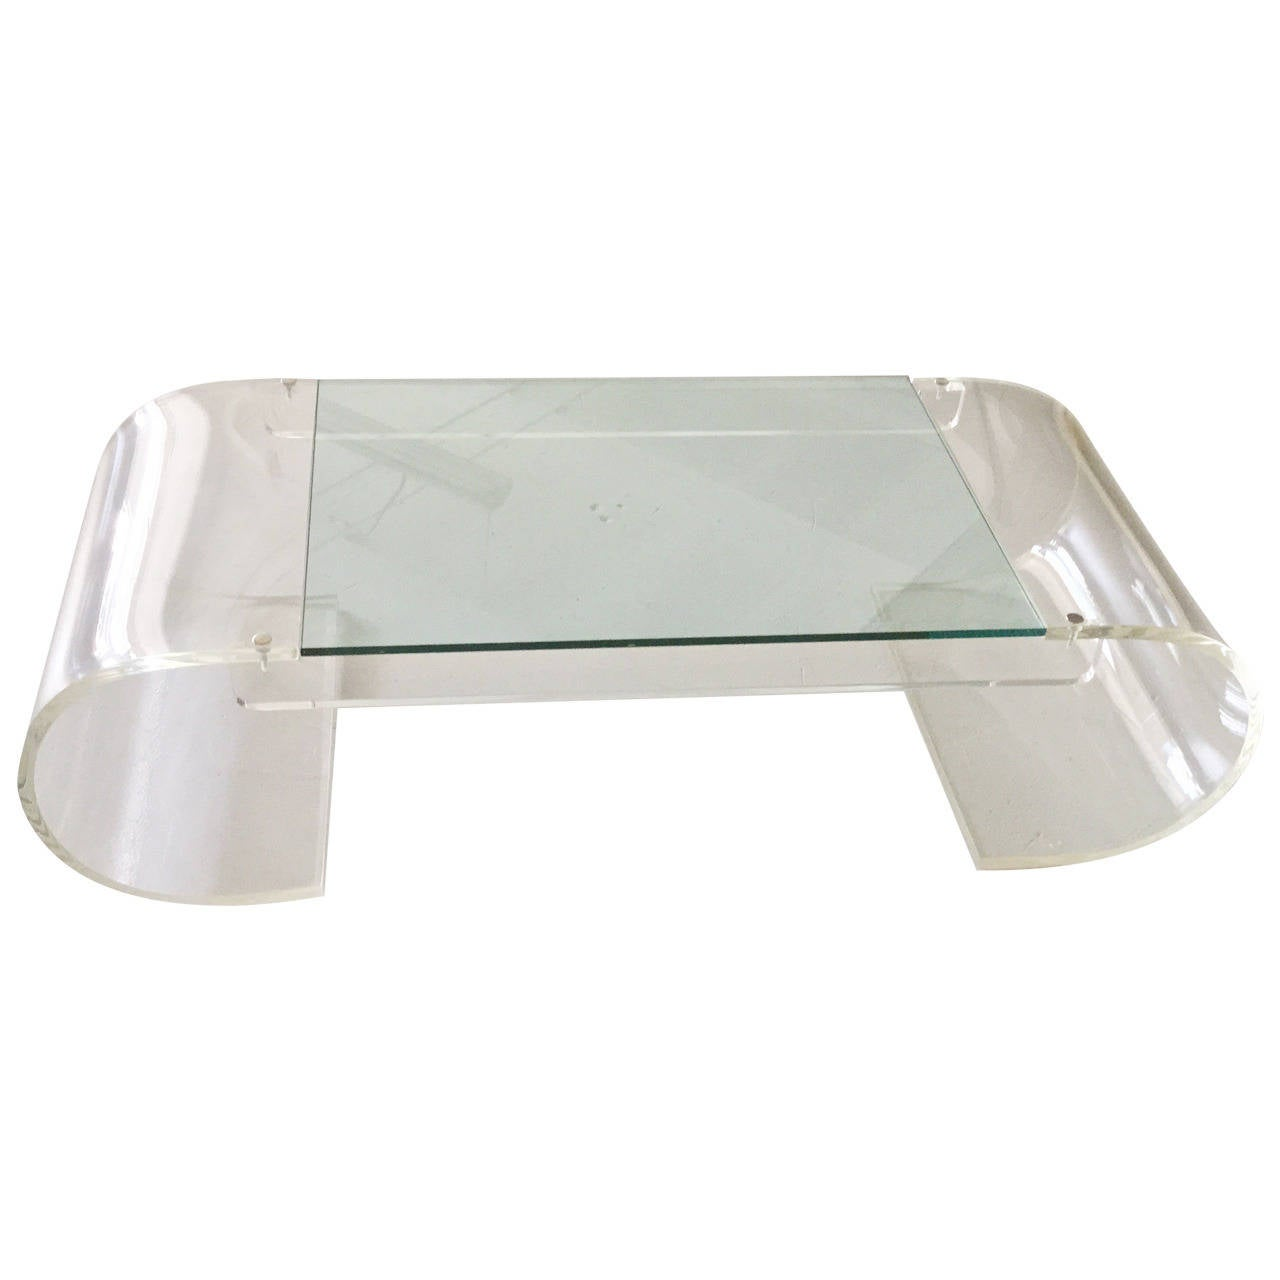 Lucite and Glass Coffee Table For Sale at 1stdibs